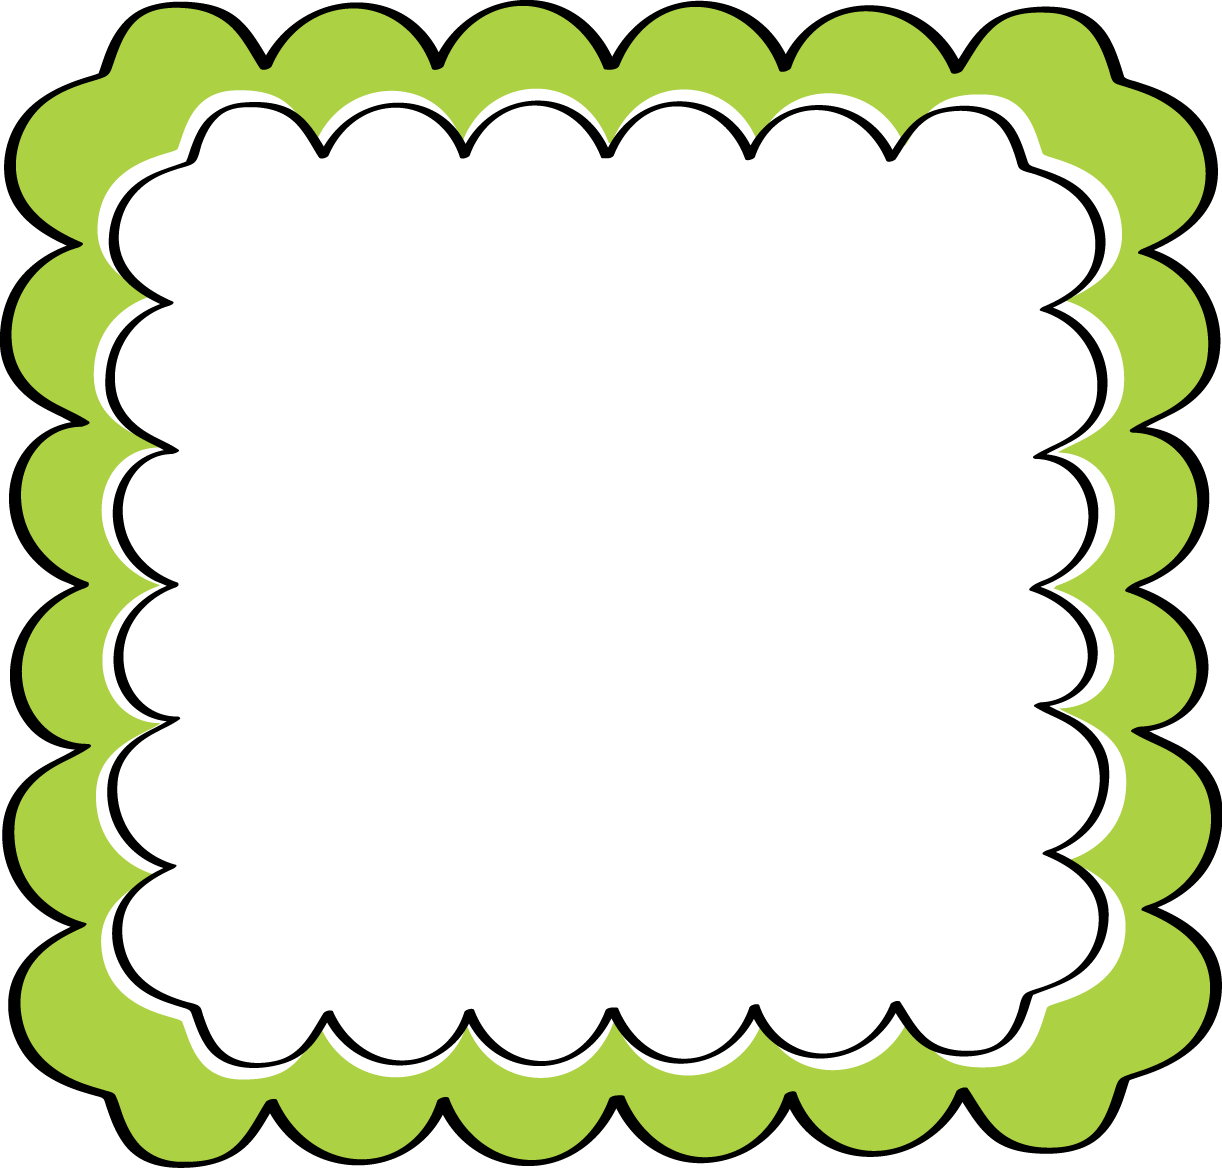 school theme border clipart green scalloped frame free clip art rh pinterest com clipart picture frame vintage clip art picture frames to put around photos